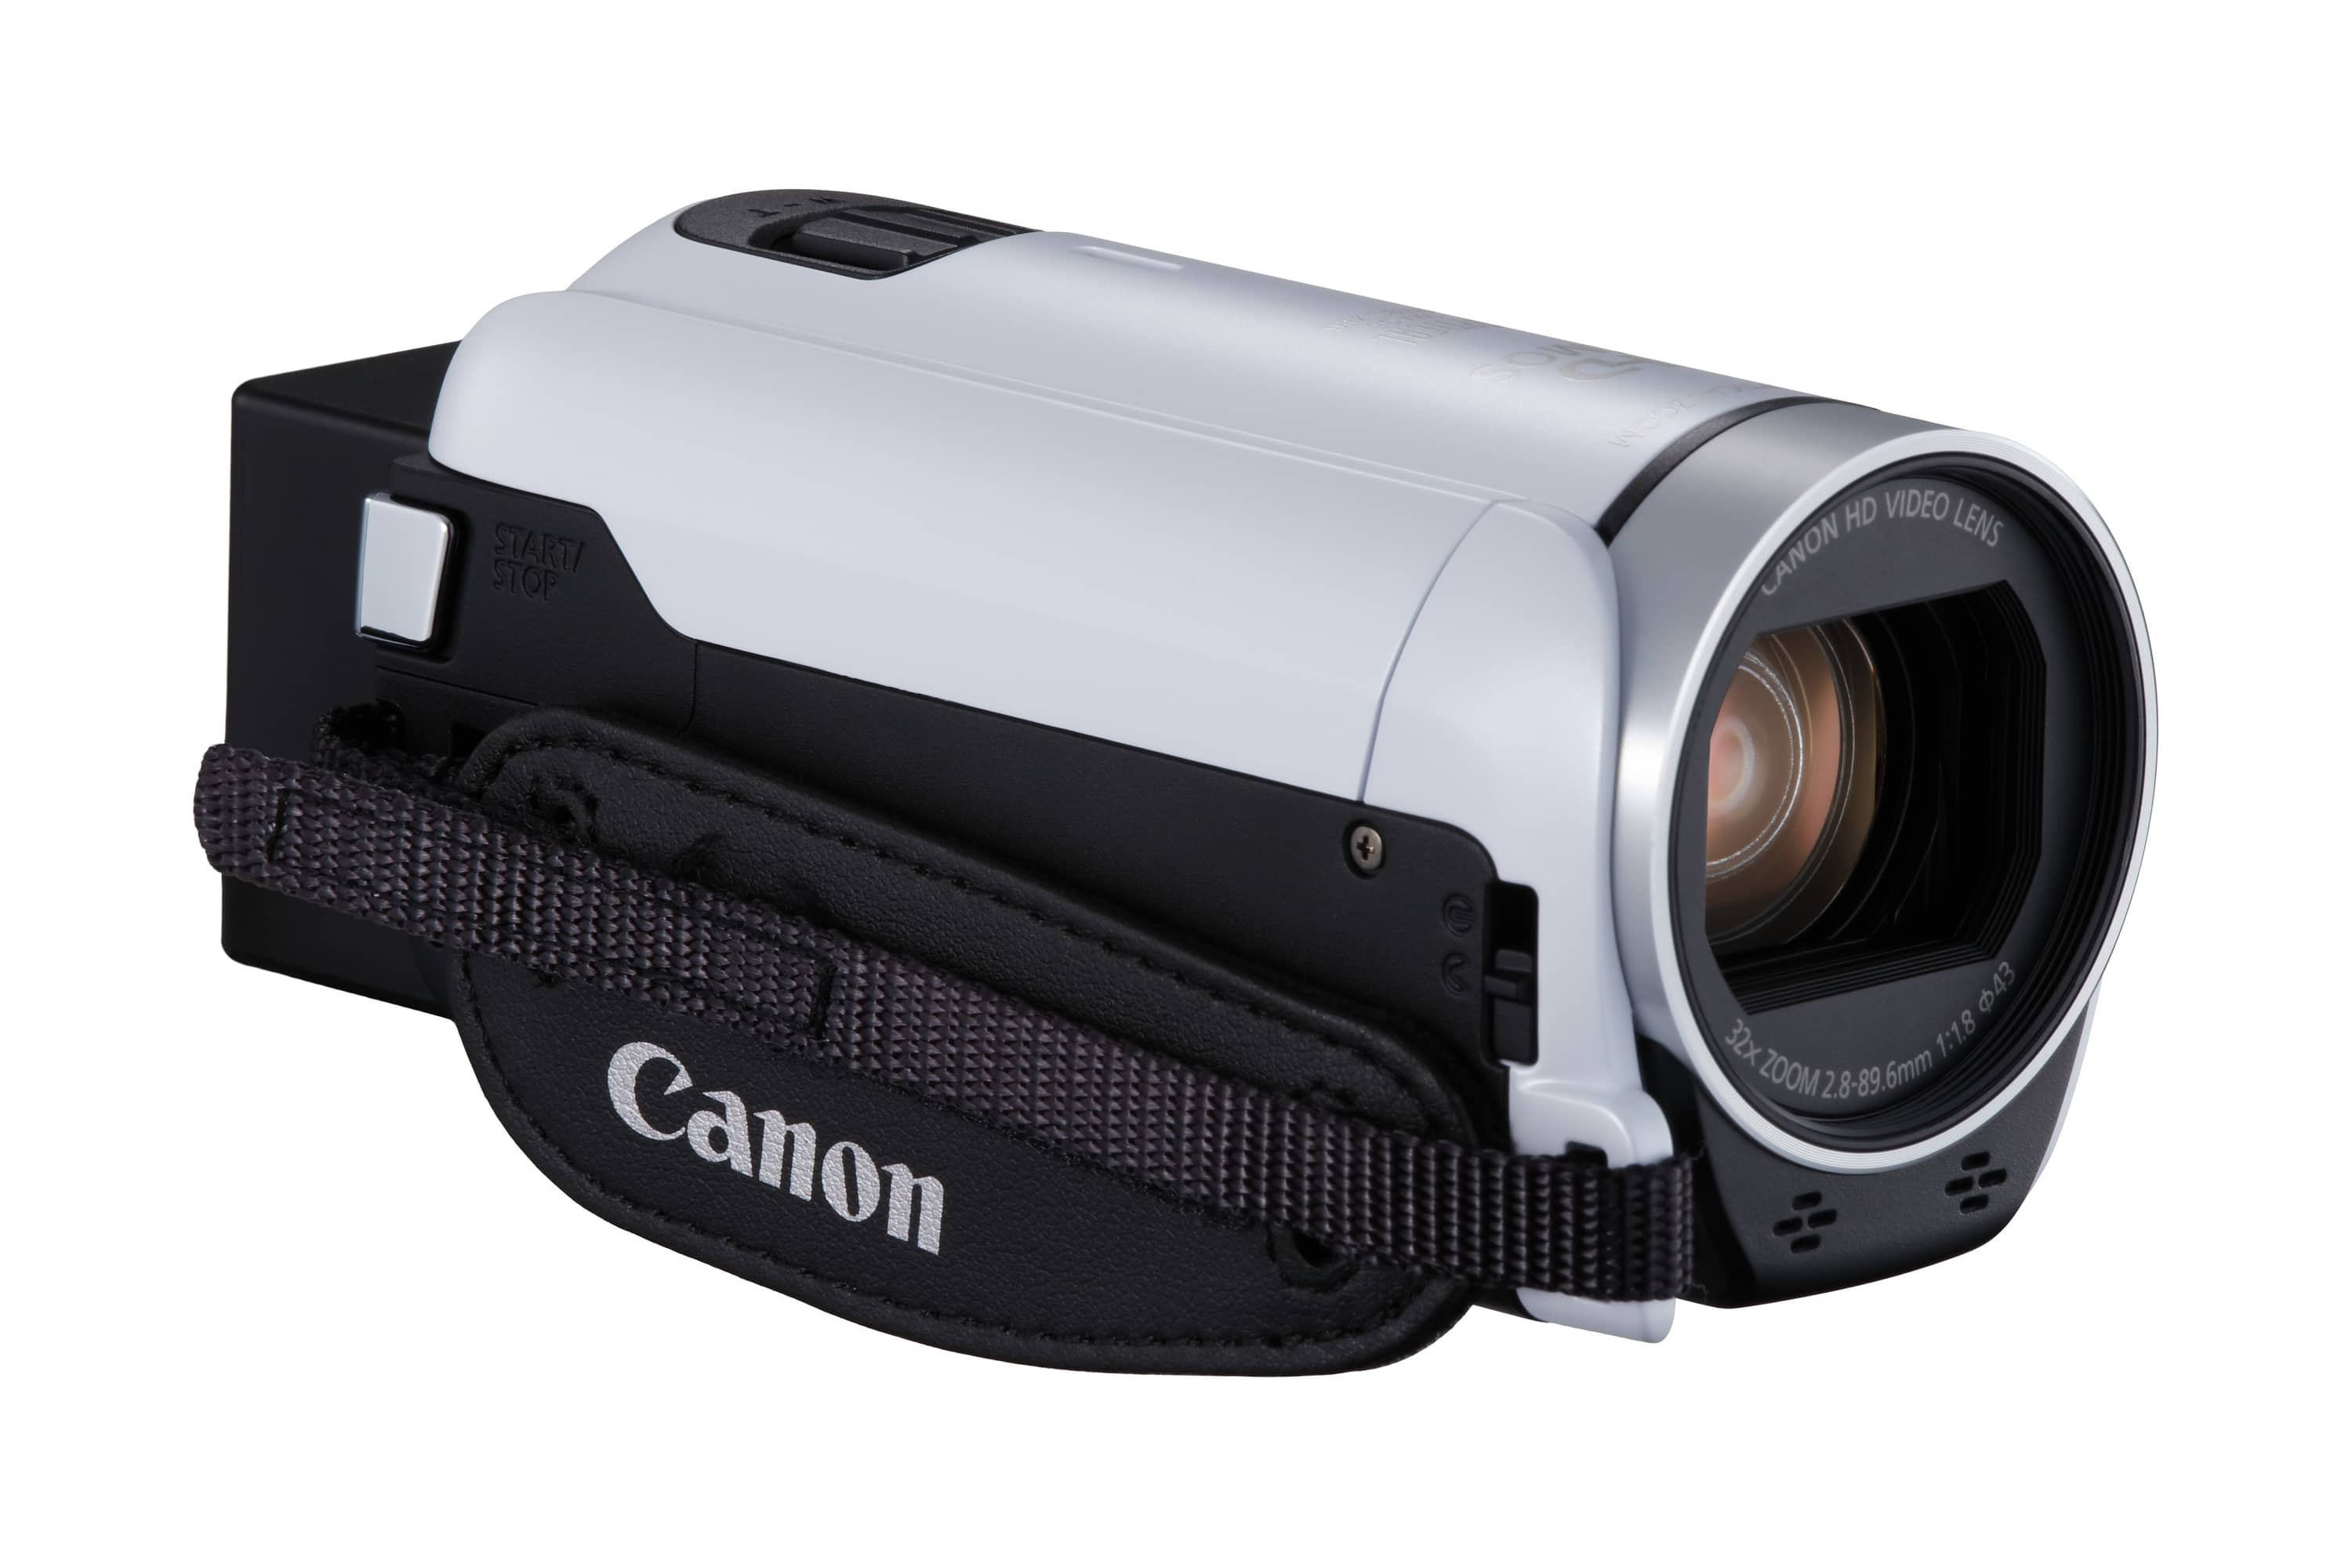 Canon LEGRIA HF R806 Camcorder 7,5cm/3'' Full-HD Baby Modus Zoom-Assistent für 239,00 Euro